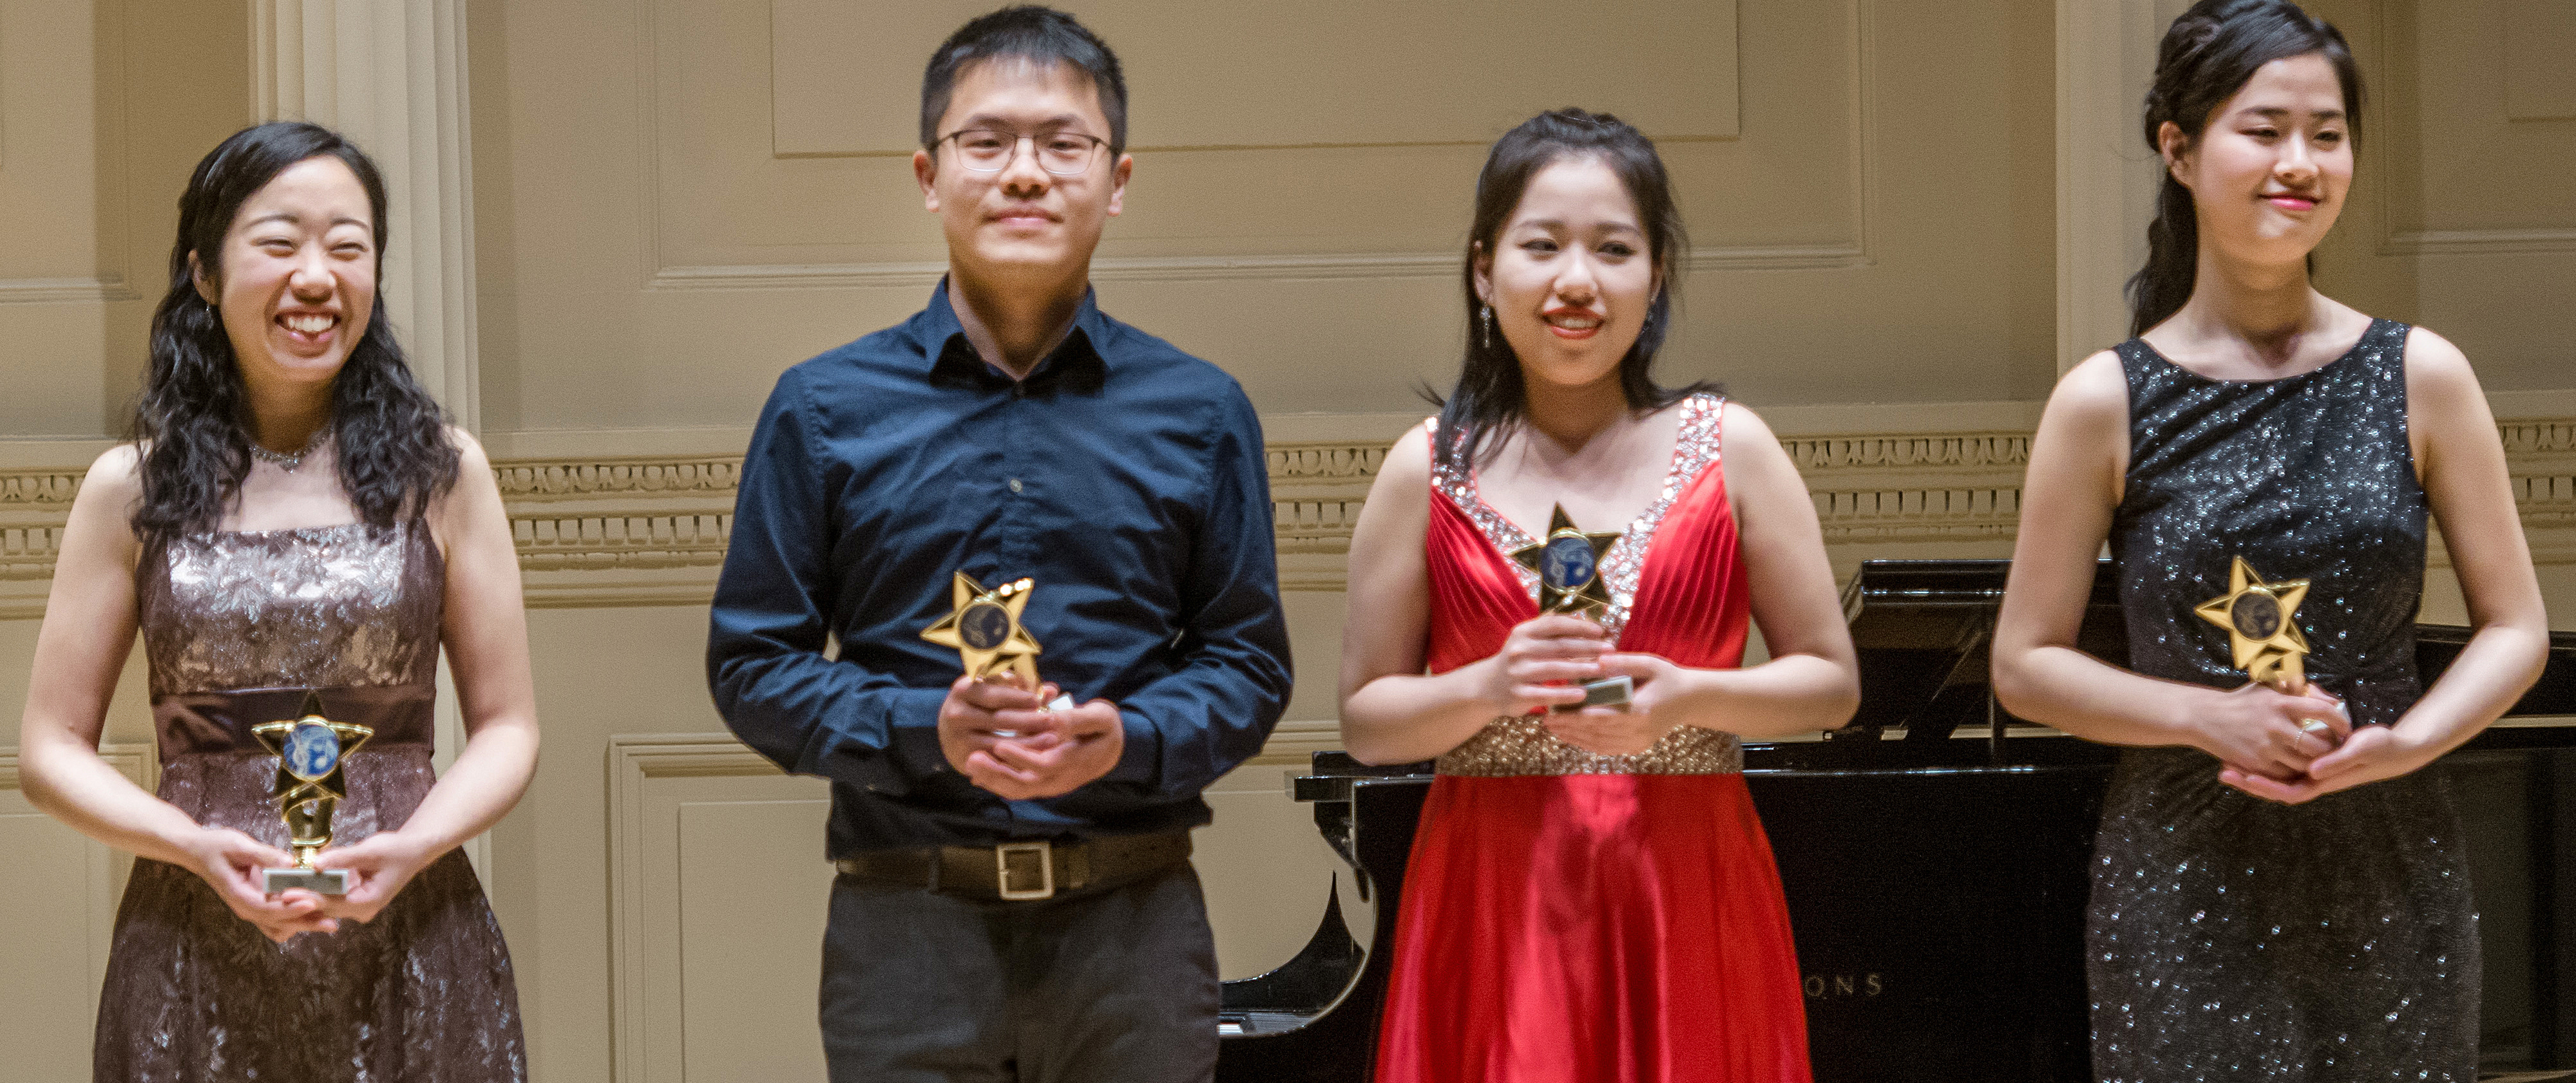 Rondo Young Artist 2017 Presents Rondo Forma Competition First Place Winners' Recital in Review